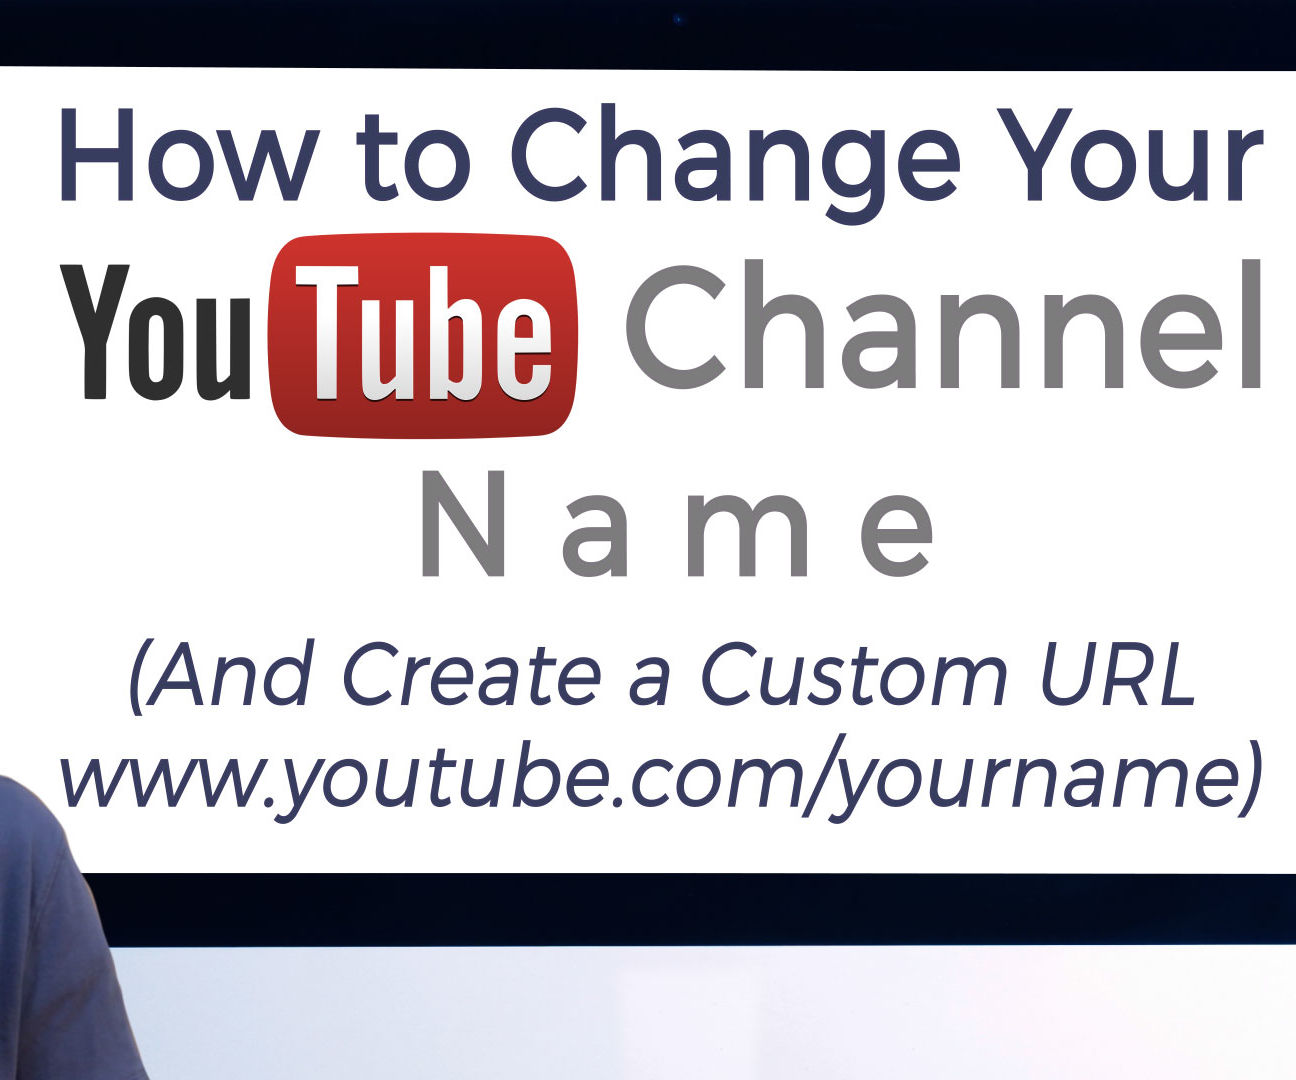 How to Change Your YouTube Channel Name and Create a Custom